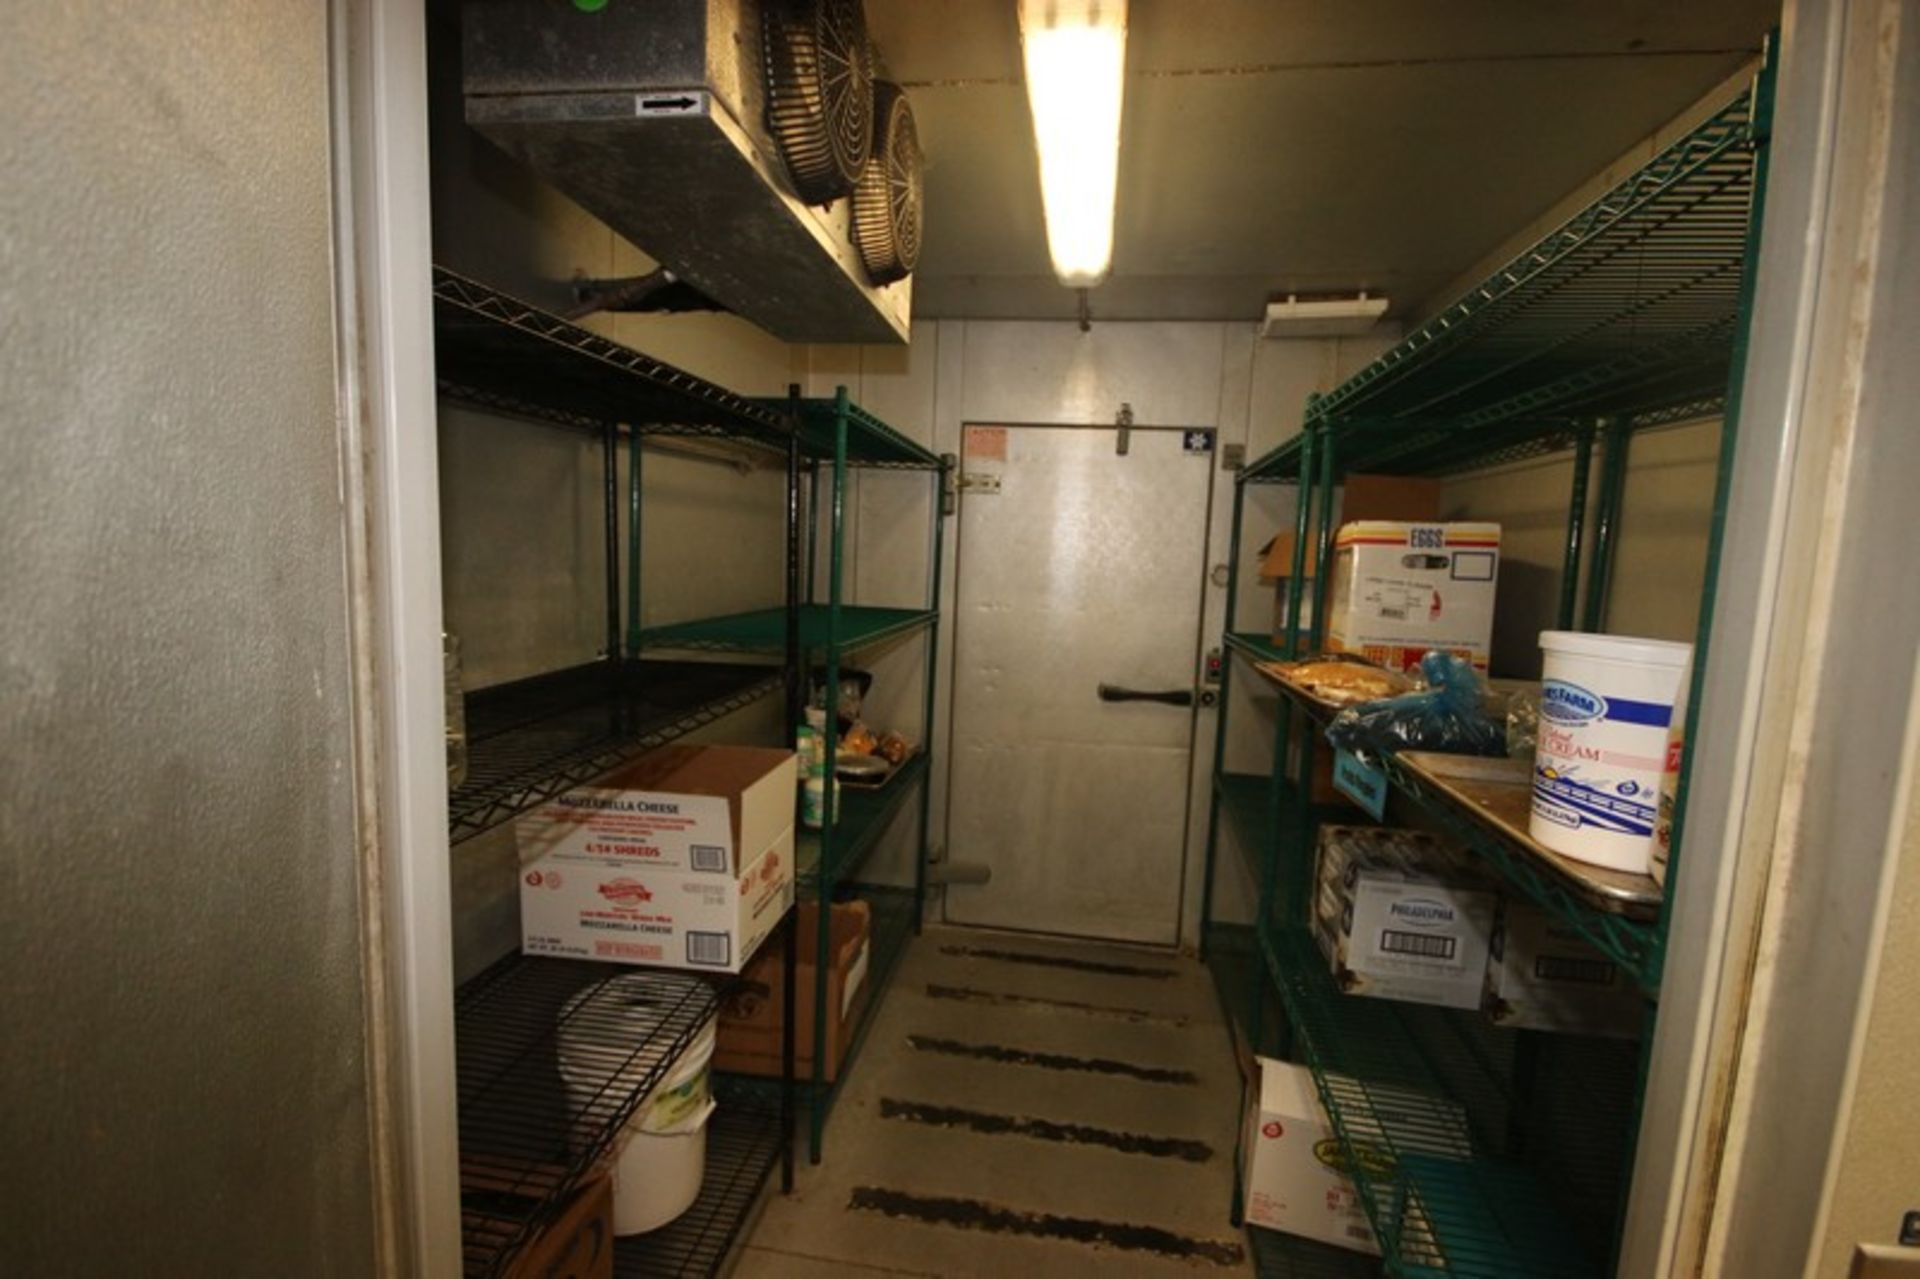 Harford Dual Compartment Walk-In Cooler & Freezer, S/N 410021576 & 410021576, Compartment Sizes: - Image 6 of 18